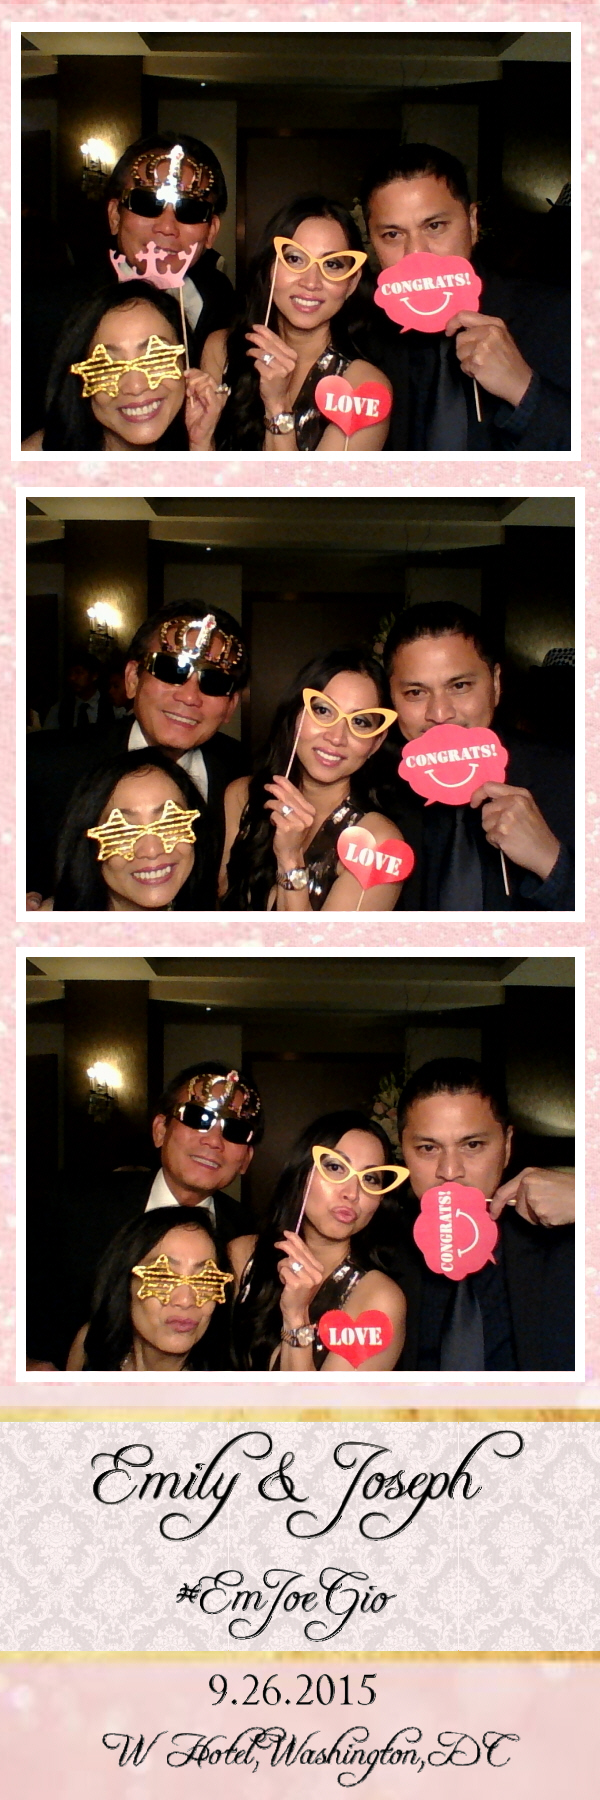 Guest House Events Photo Booth E&J (12).jpg